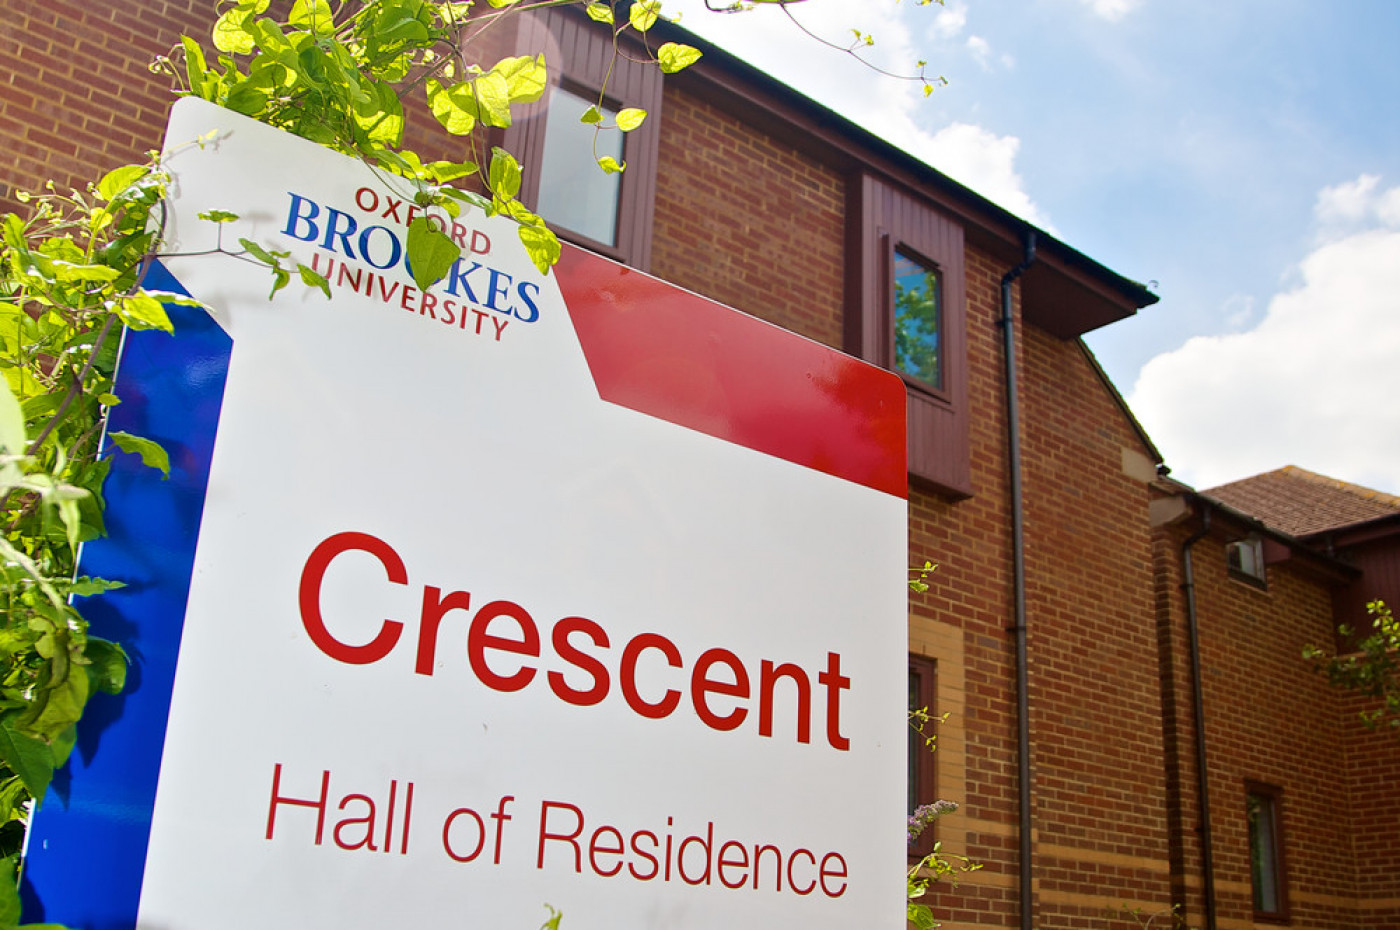 Outside Crescent Hall